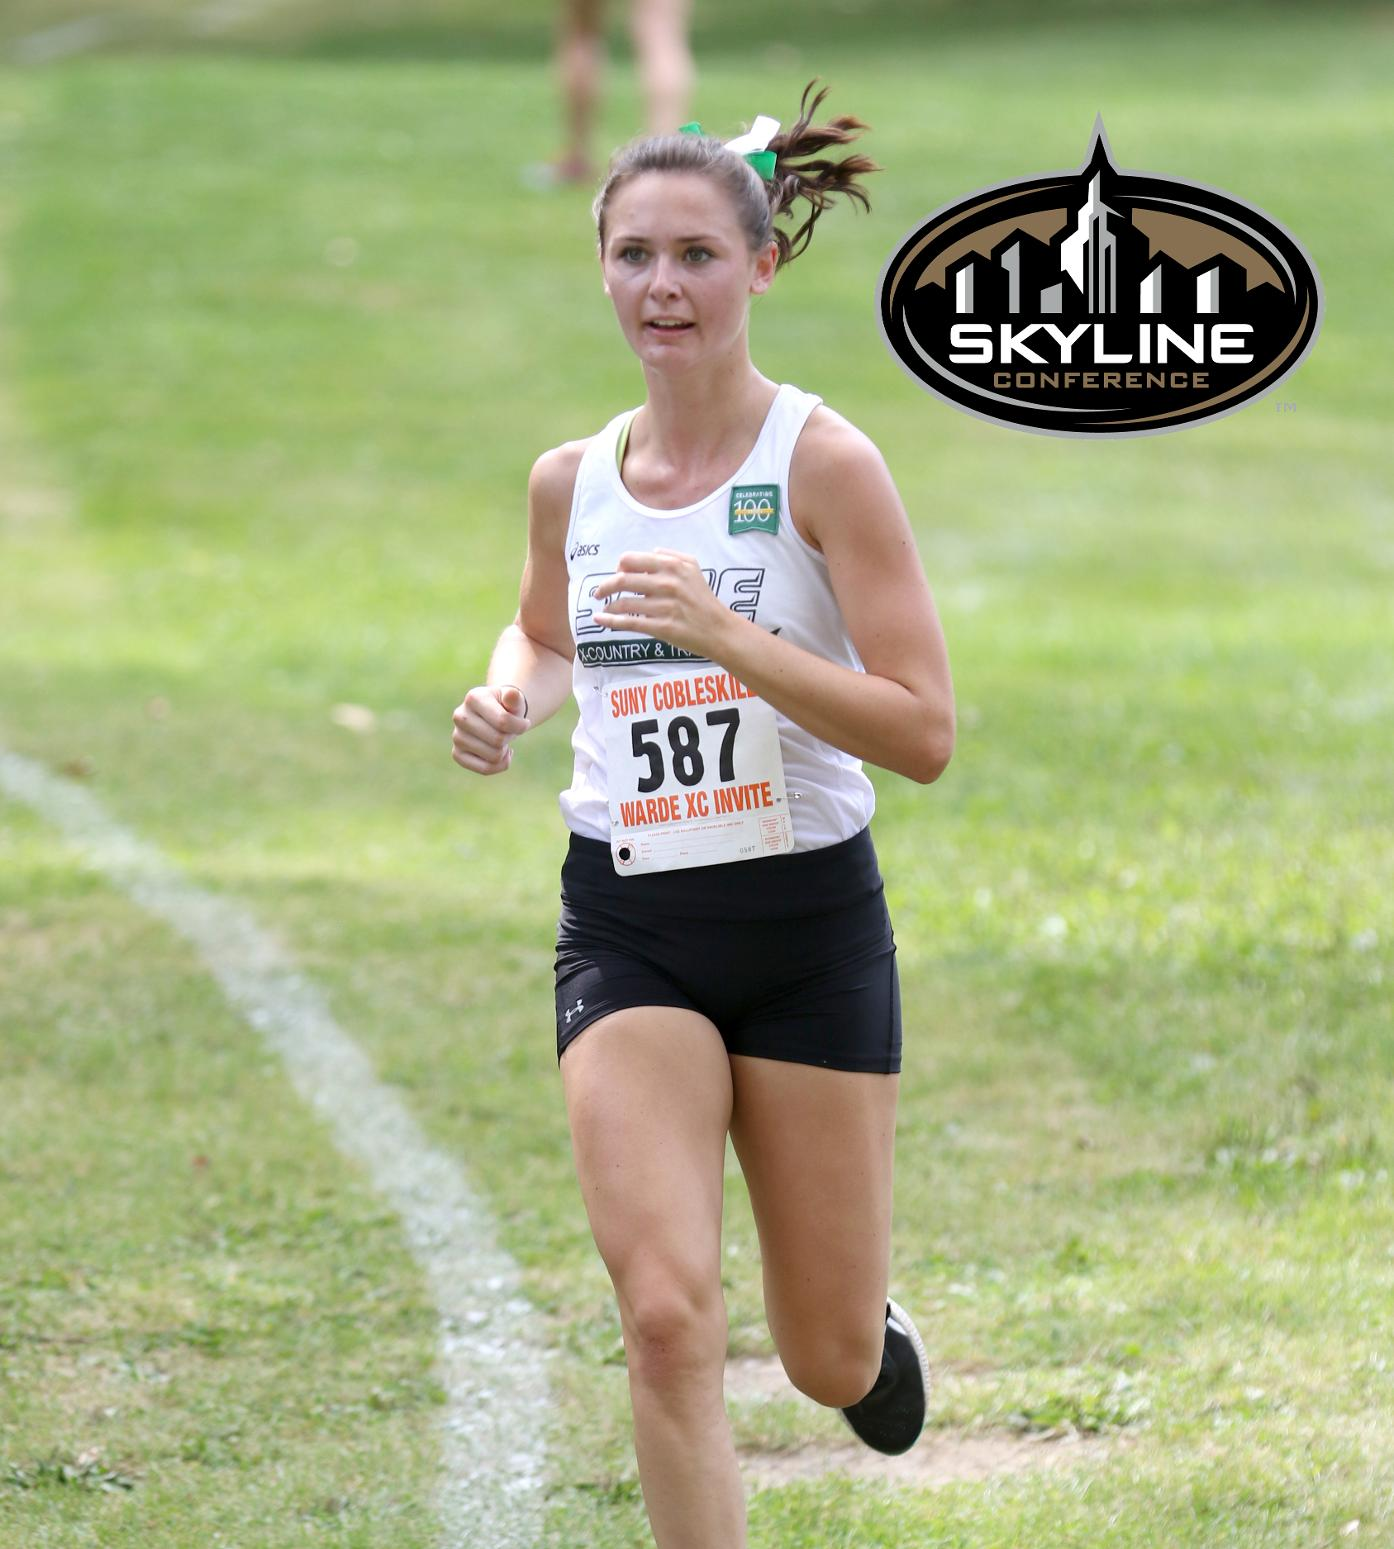 Farrell selected as Skyline Rookie Runner of the Week